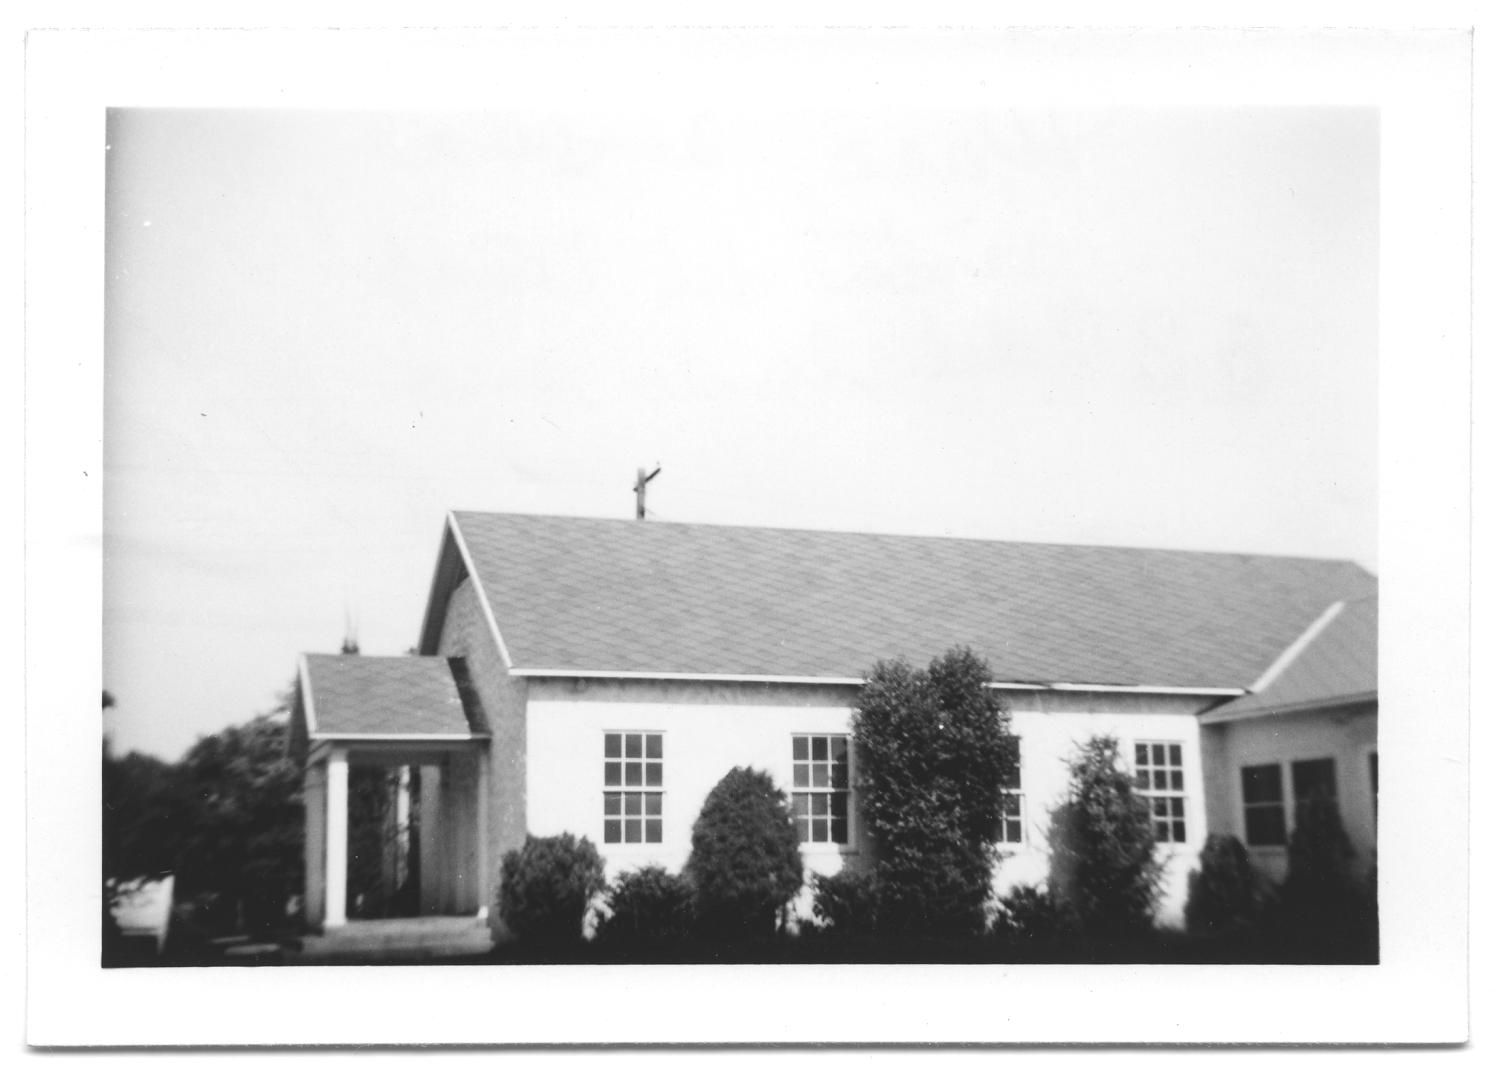 [Side View of a Large Church Building]                                                                                                      [Sequence #]: 1 of 2